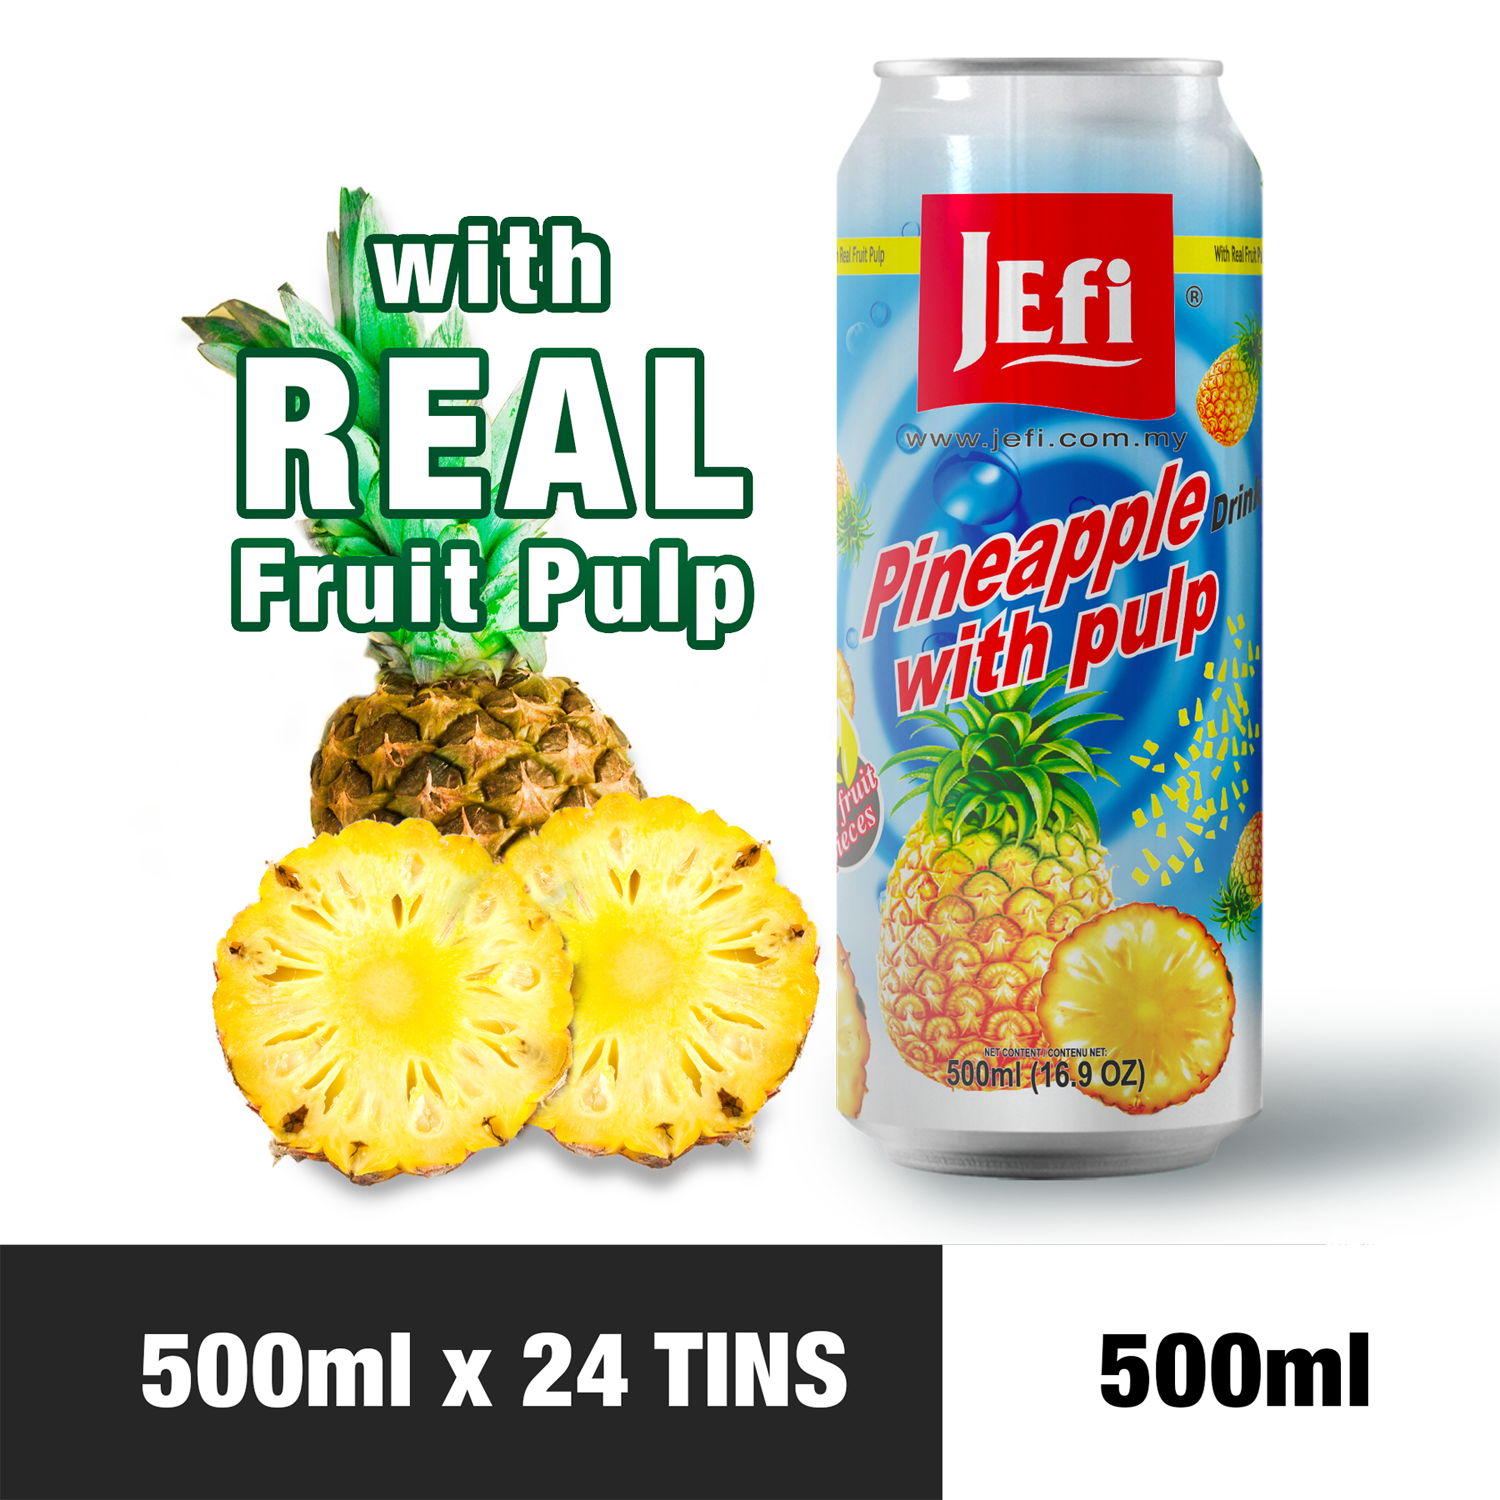 JEFI Pineapple Drink with Real Fruit Pulp (500ml x 24tins)